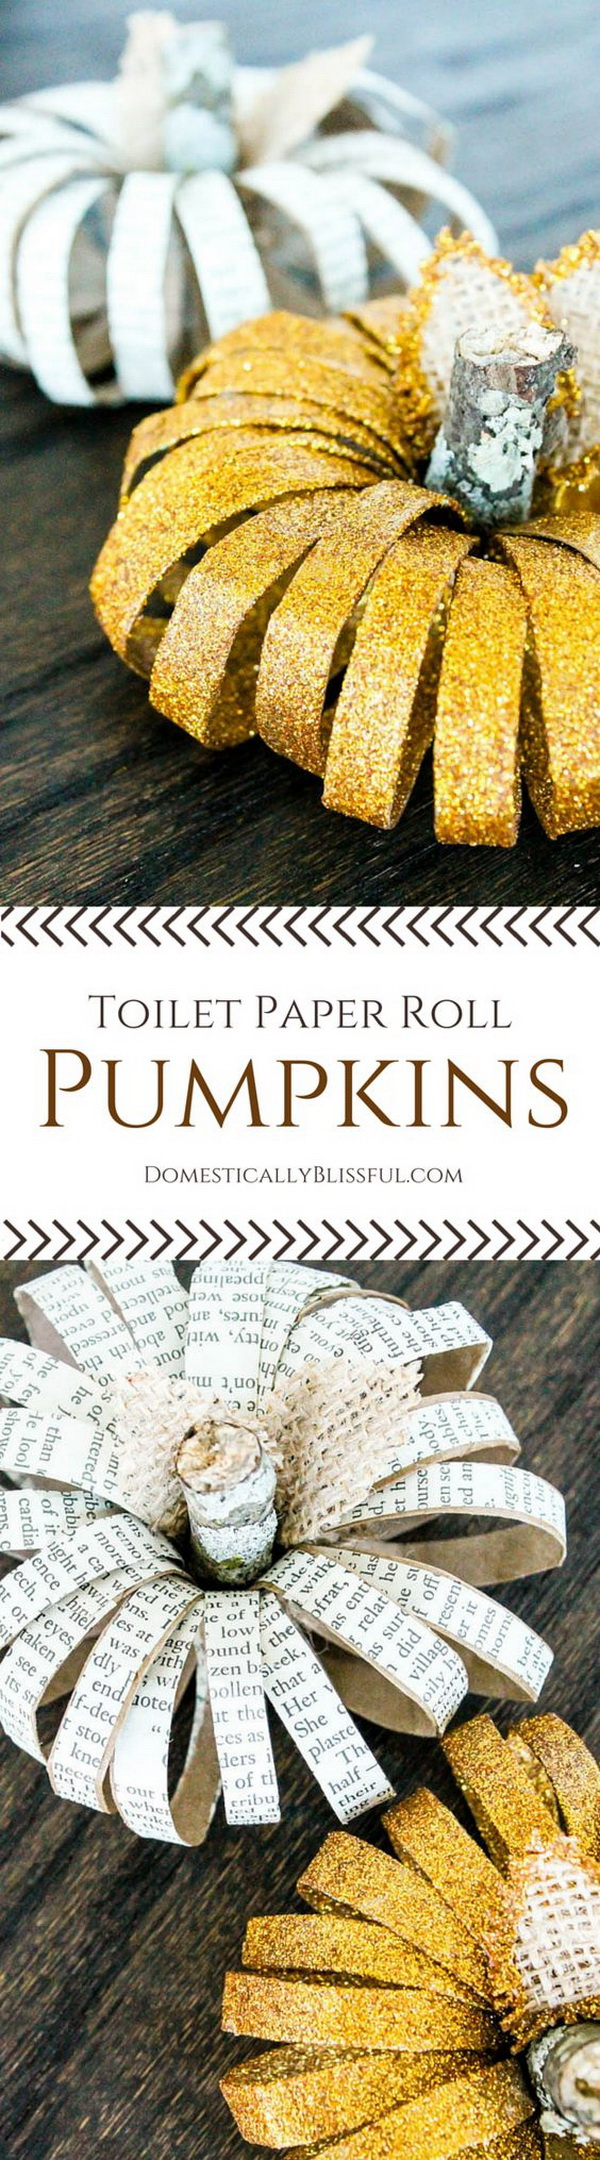 DIY Paper Roll Pumpkins. Repurpose some old bookpages into these fun and easy pumpkin crafts and finished with some gold glitters. Super easy and fun craft for your kids to make together.